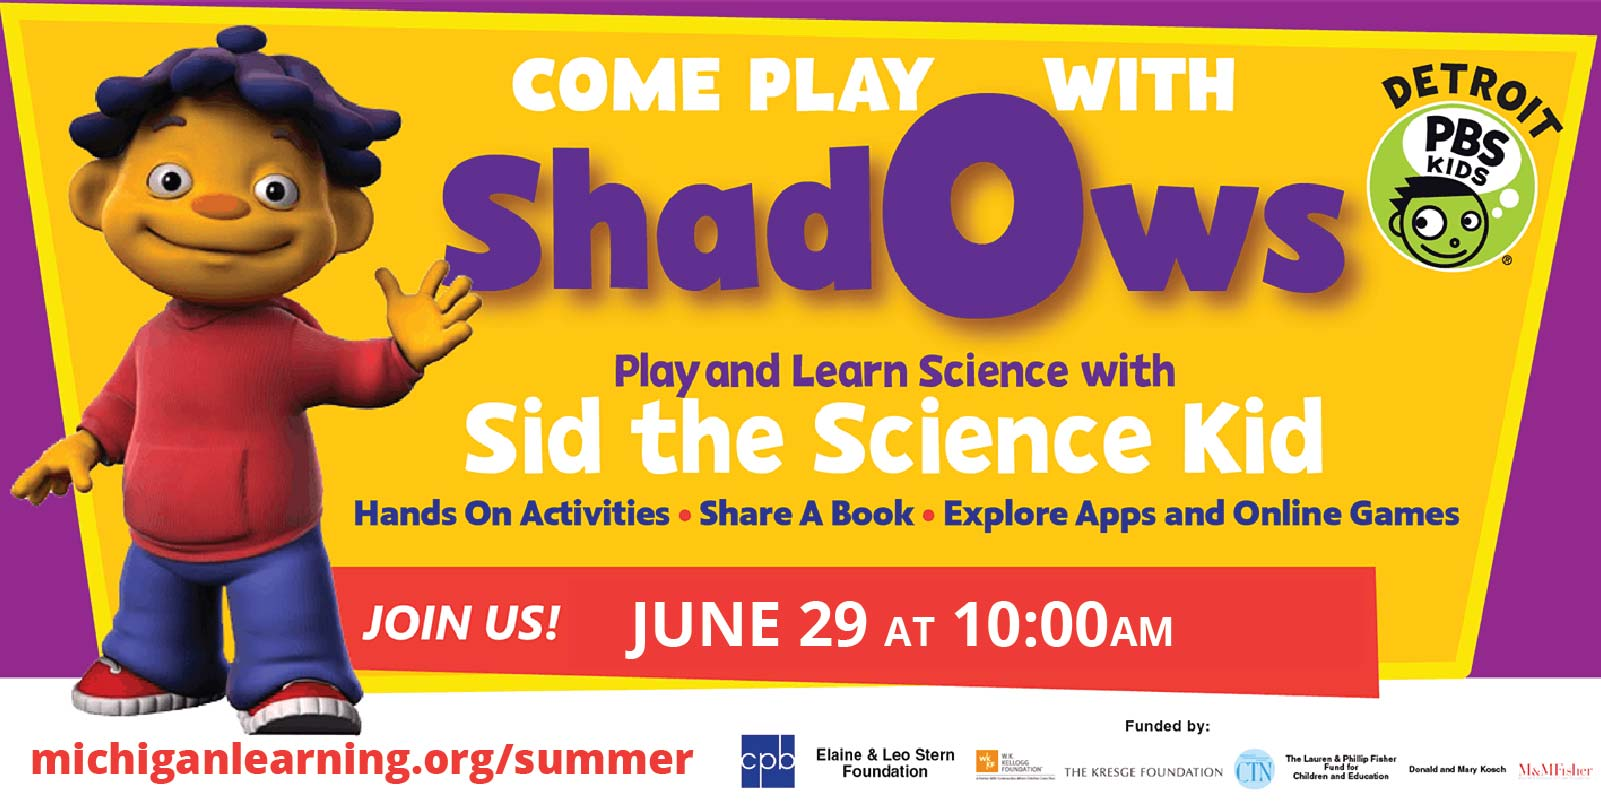 Shadows with Sid teh Science Kid, Detroit PBS Kids, and Michigan Learning Channel